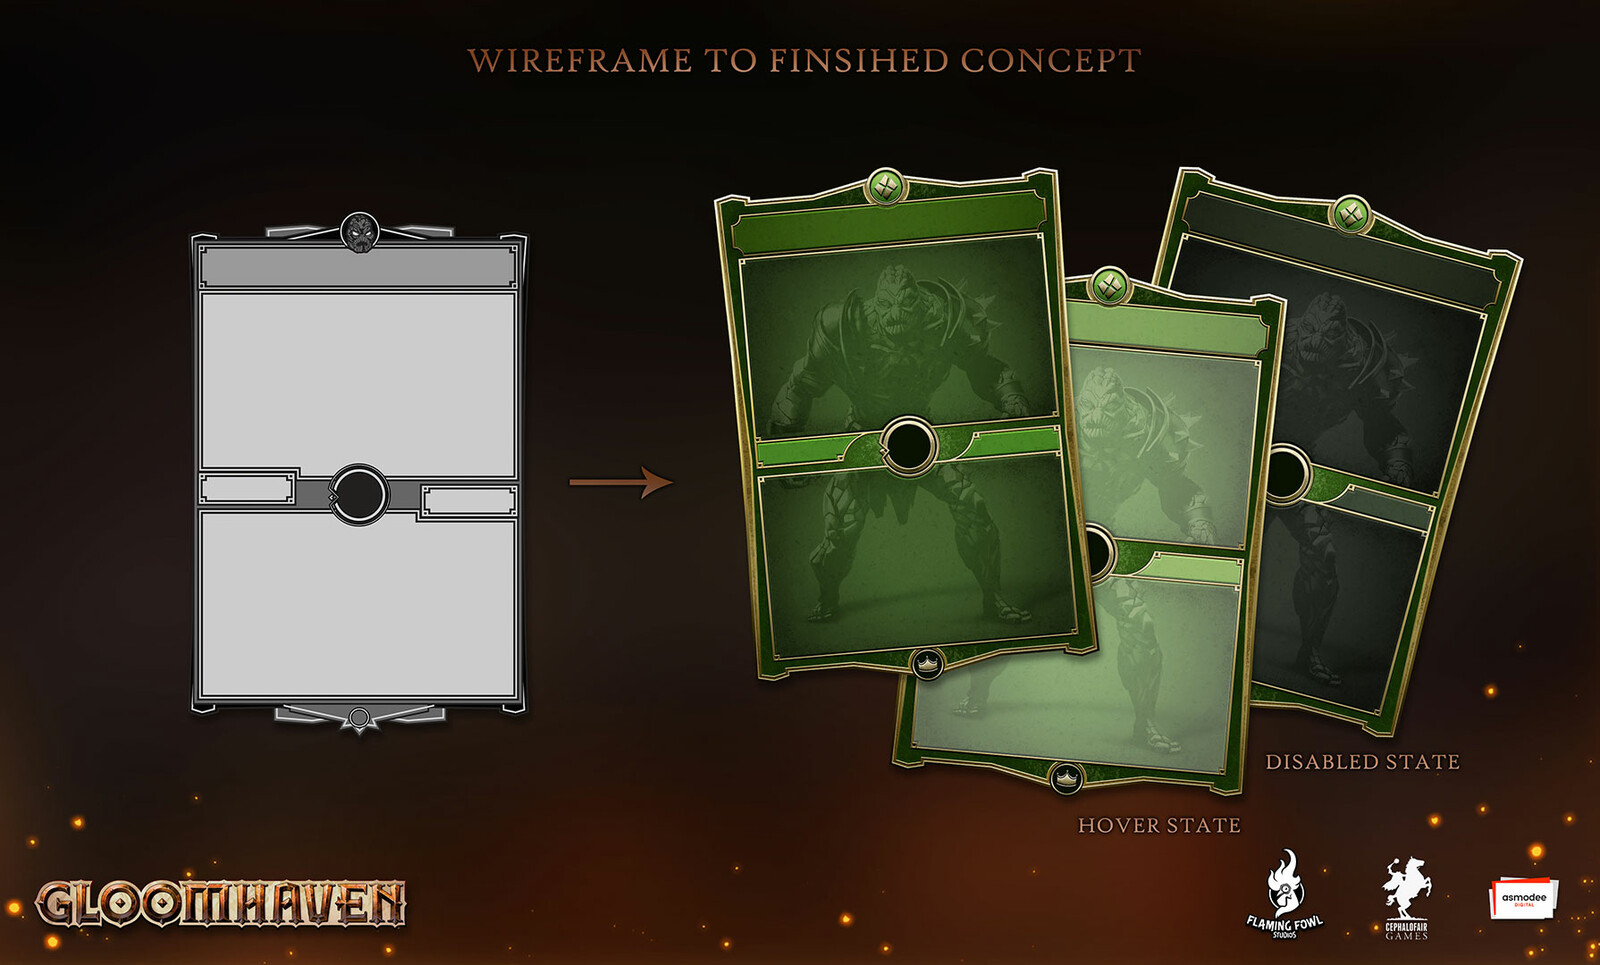 The chosen wireframe was developed.